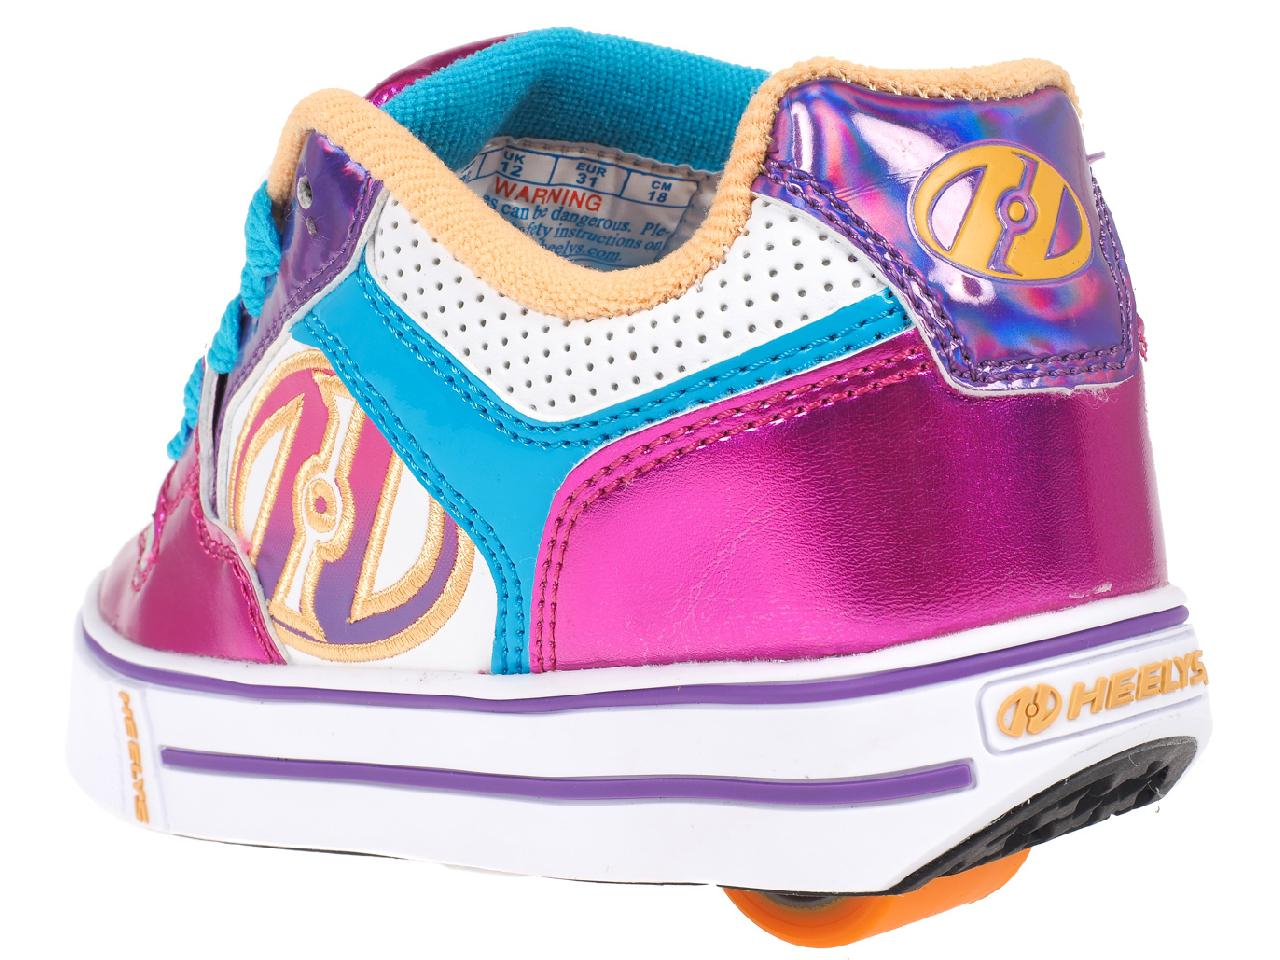 Shoes-to-Casters-Heelys-Motion-More-Fuchsia-White-Pink-11296-New thumbnail 3